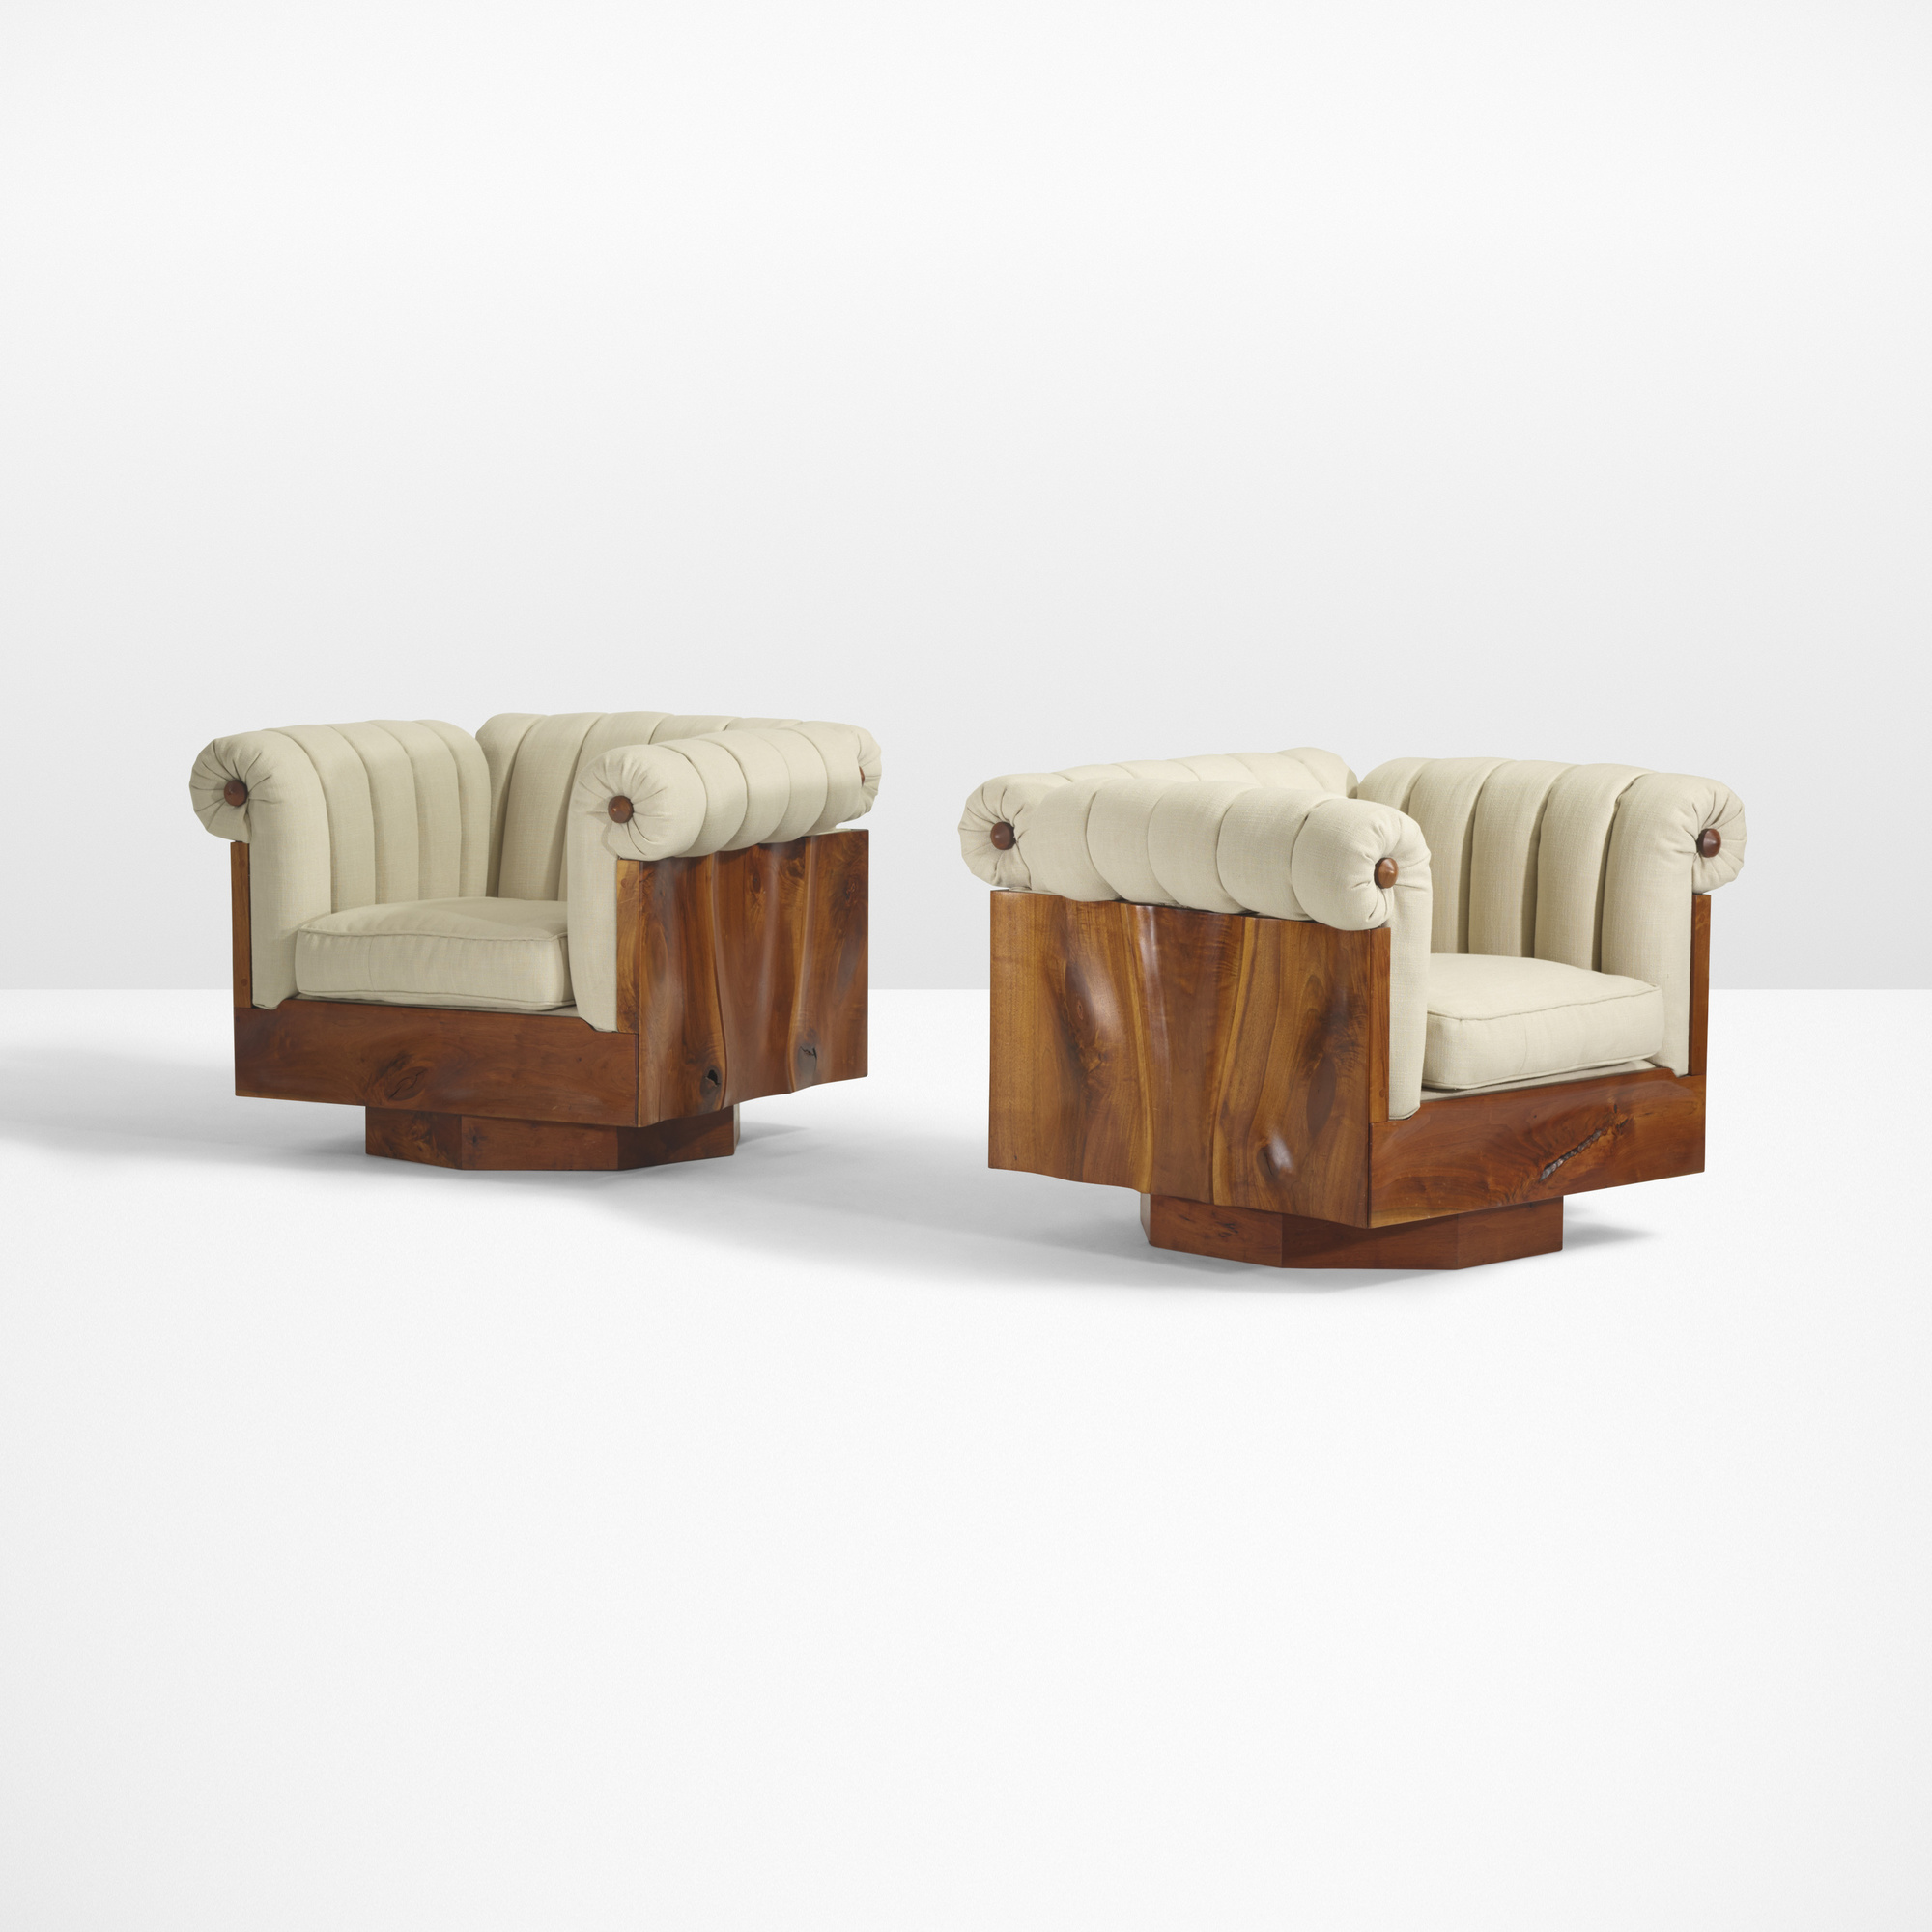 40: Phillip Lloyd Powell / Rare Carved Panel Lounge Chairs, Pair (1 Of